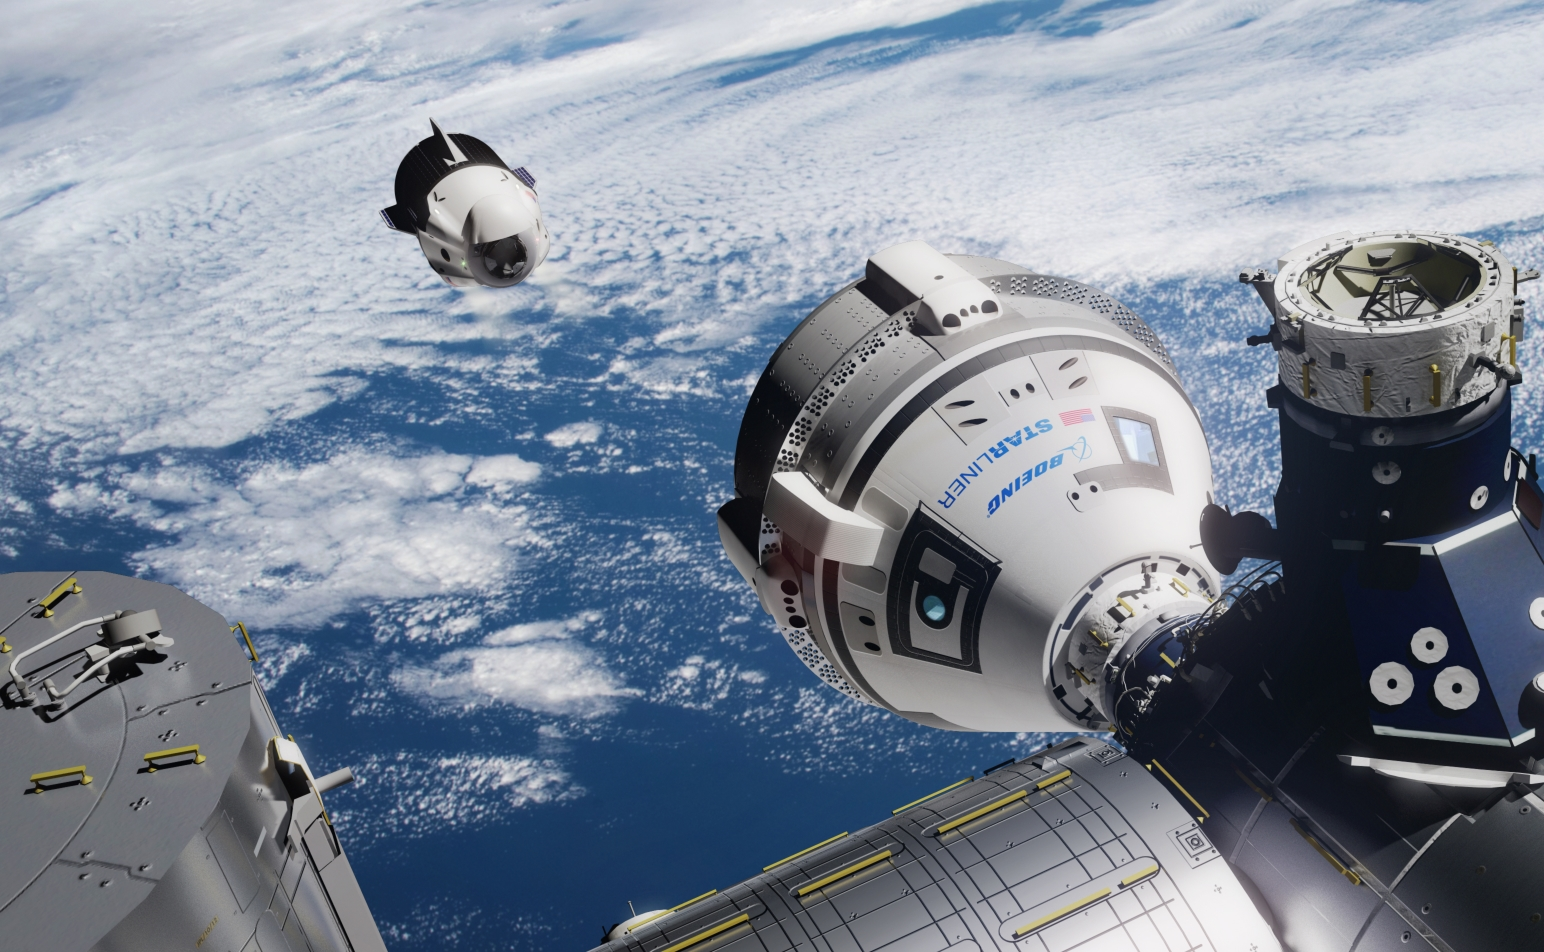 NAC provides Starliner, Dragon 2 update – Commercial Crew ...